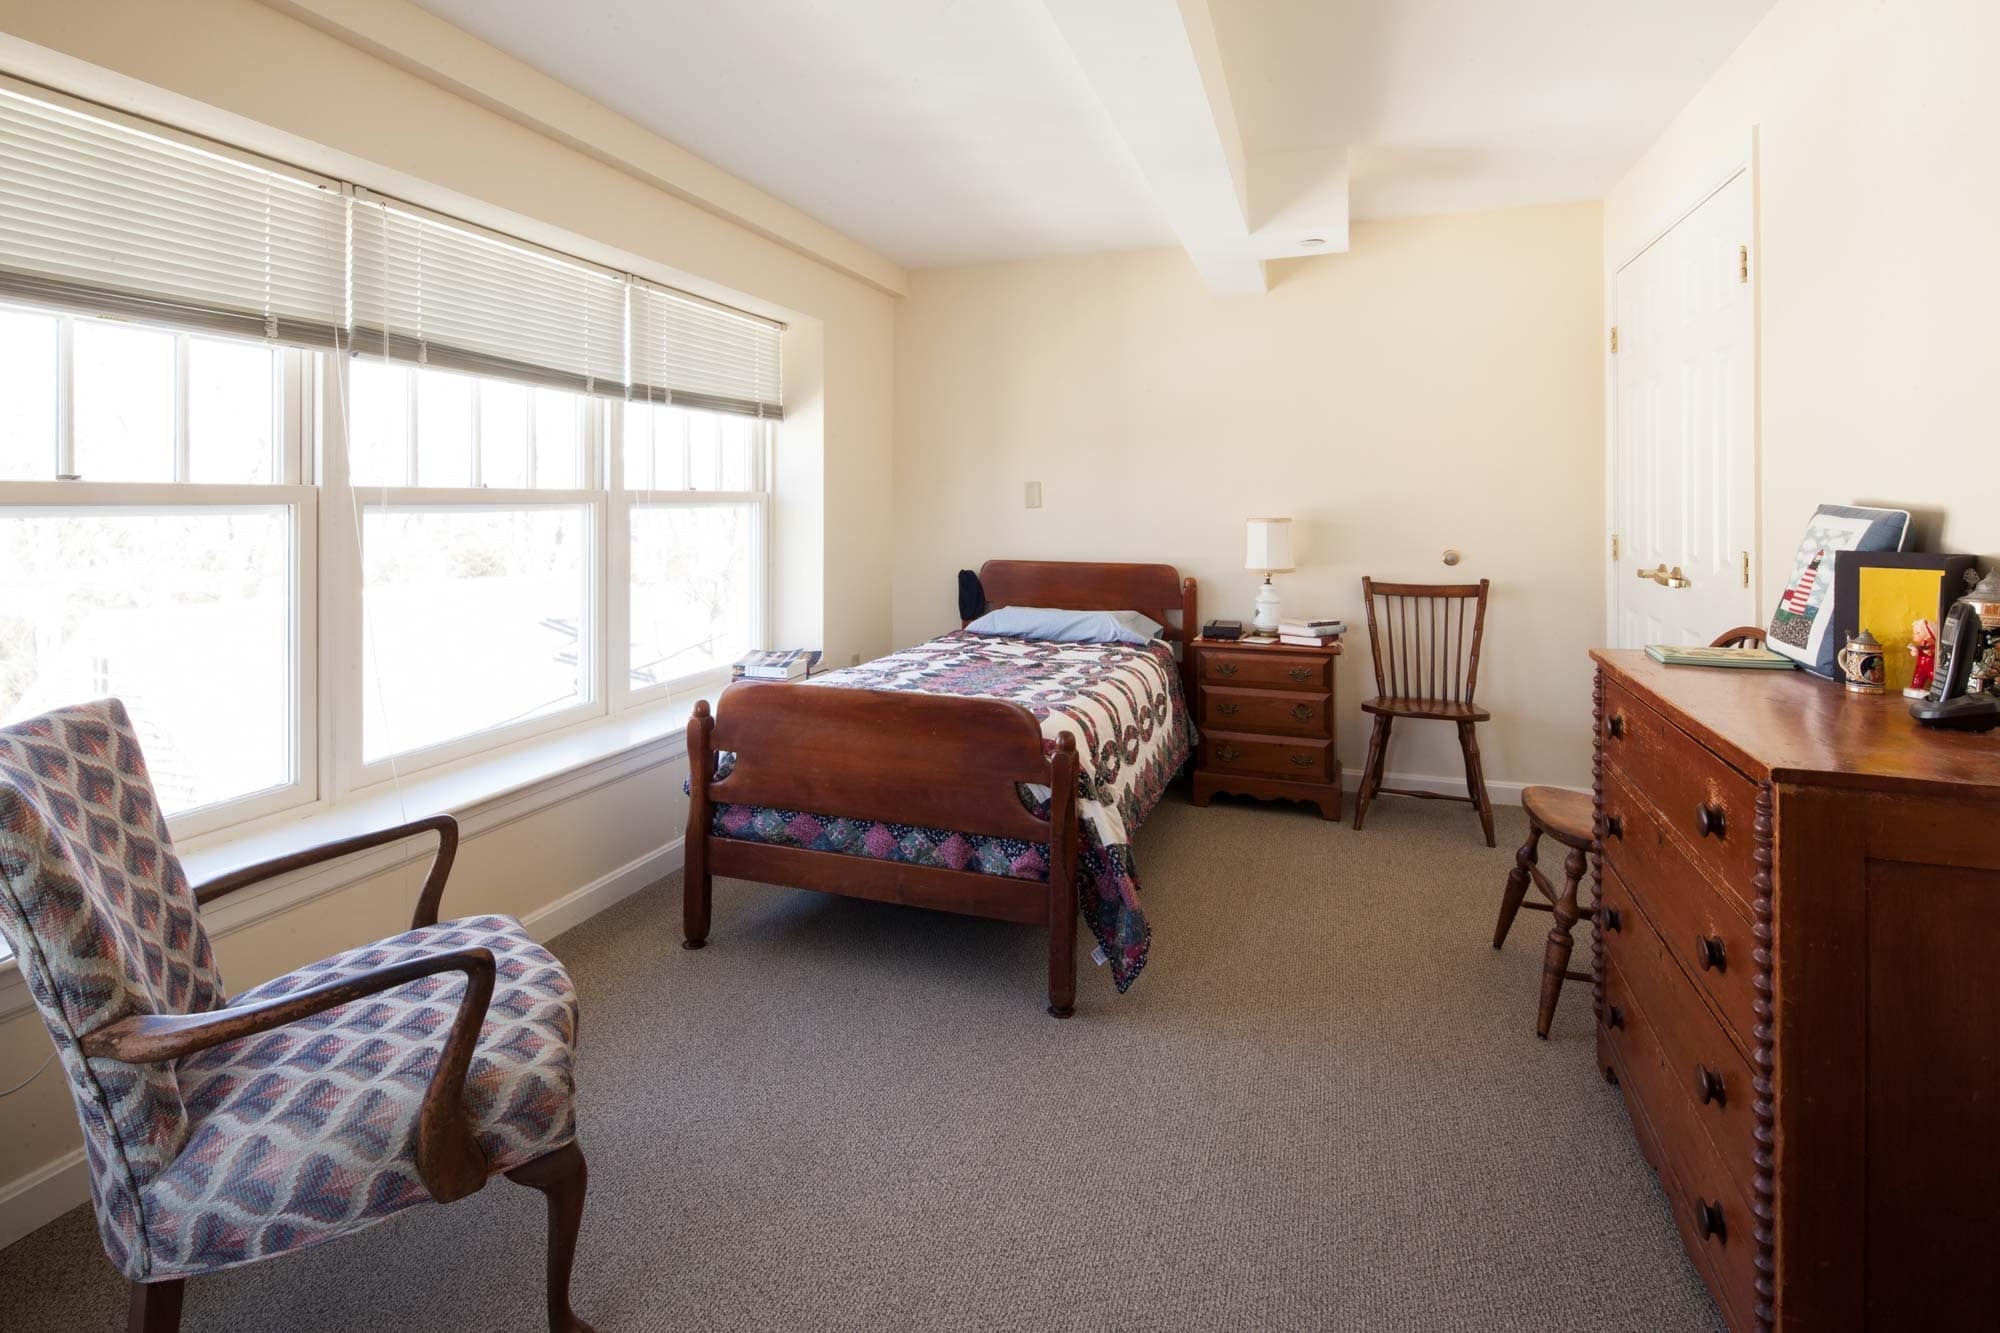 View of private bedroom in a one bedroom living space